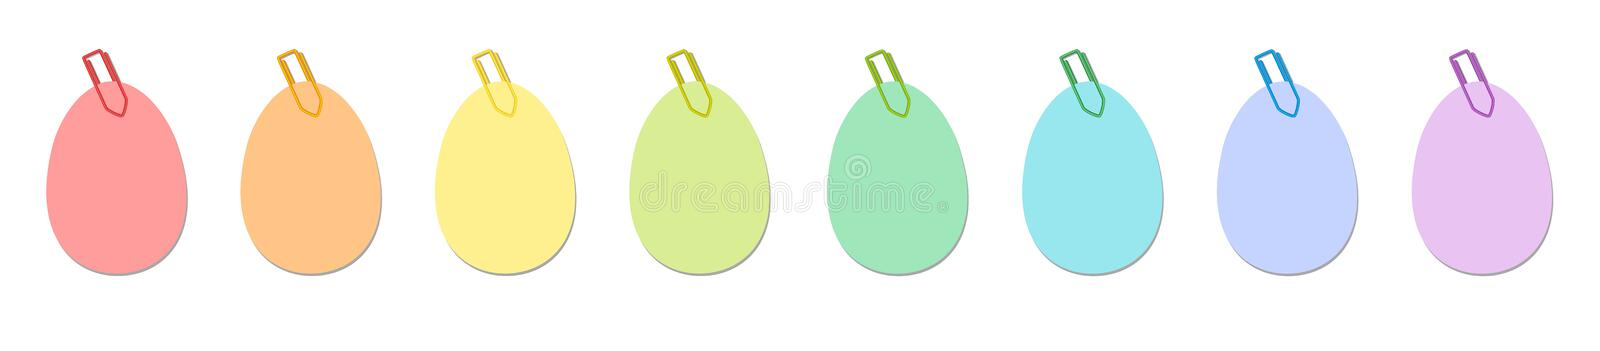 Easter Eggs Paper Clips Notes Colors stock illustration